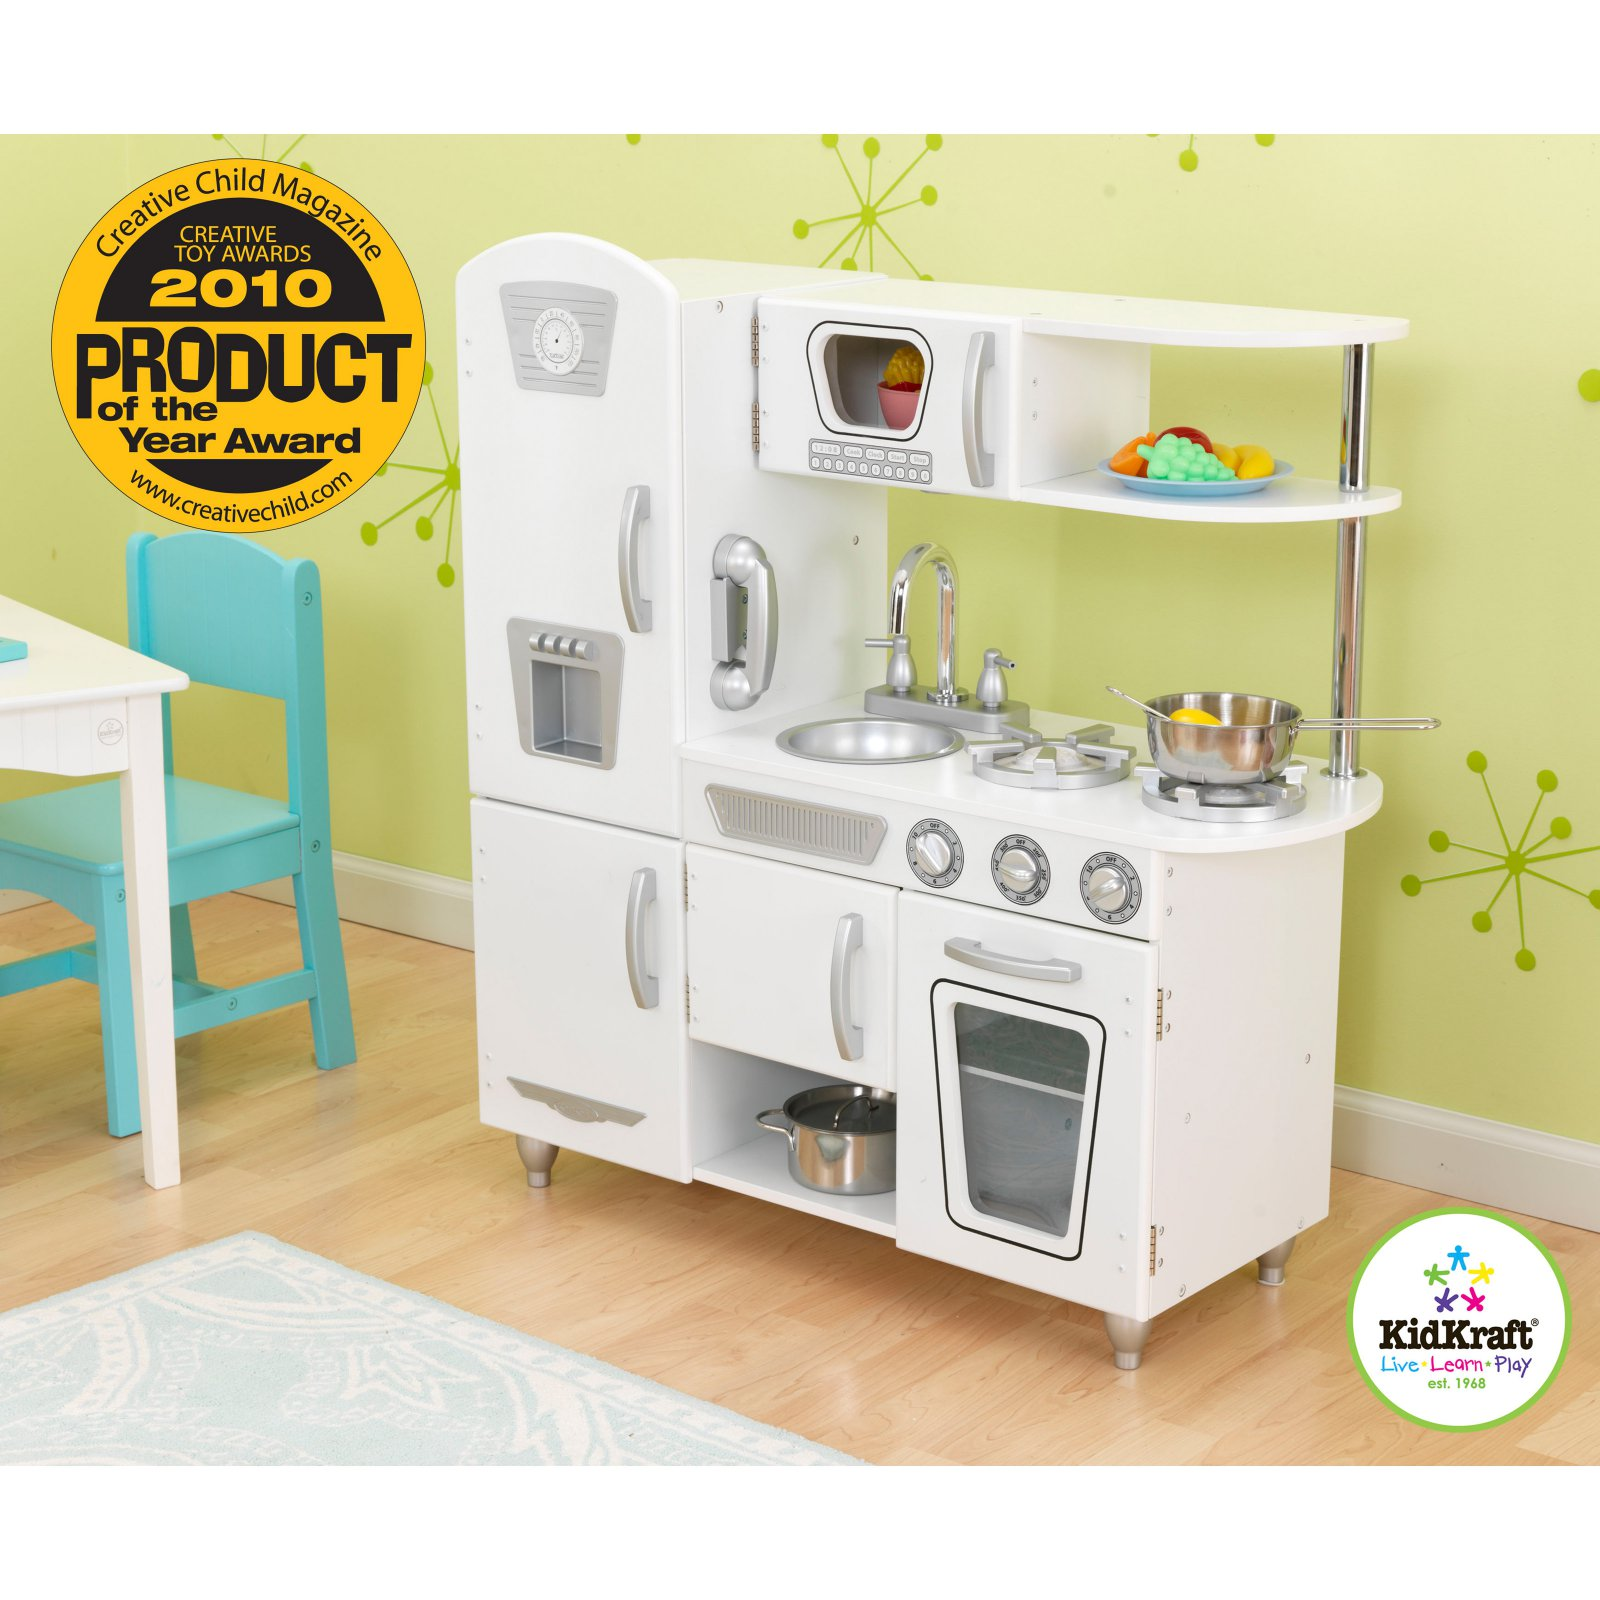 Kidkraft Küche Retro Kidkraft White Vintage Kitchen In 2019 Products Kidkraft